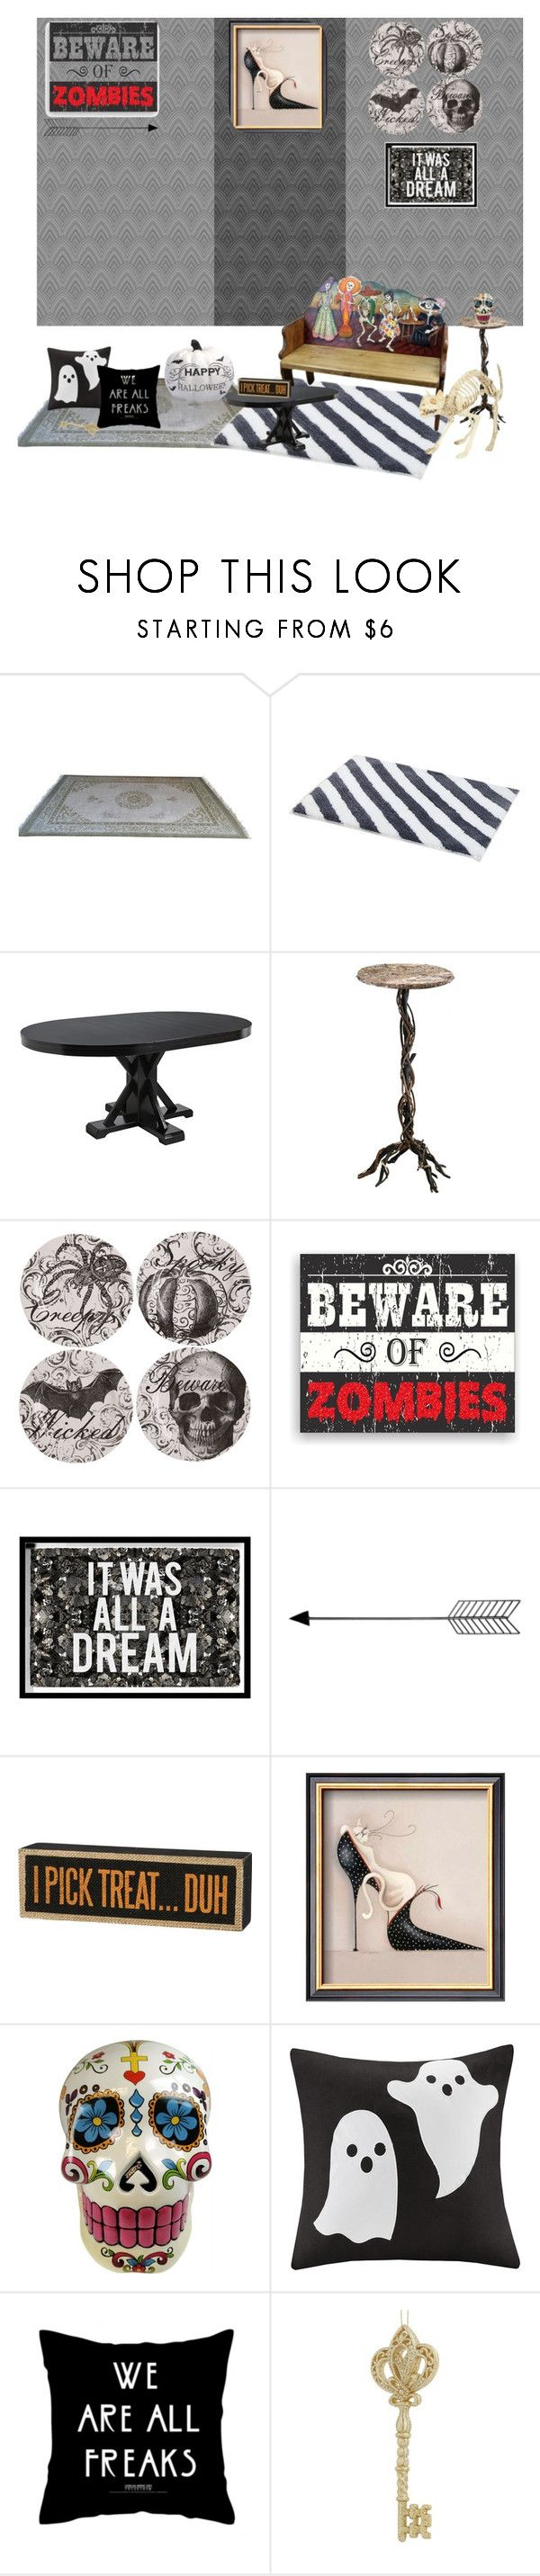 """""""Halloween Theme Decor"""" by freisstea on Polyvore featuring interior, interiors, interior design, home, home decor, interior decorating, Pier 1 Imports, Cyan Design, Sixtrees and Oliver Gal Artist Co."""